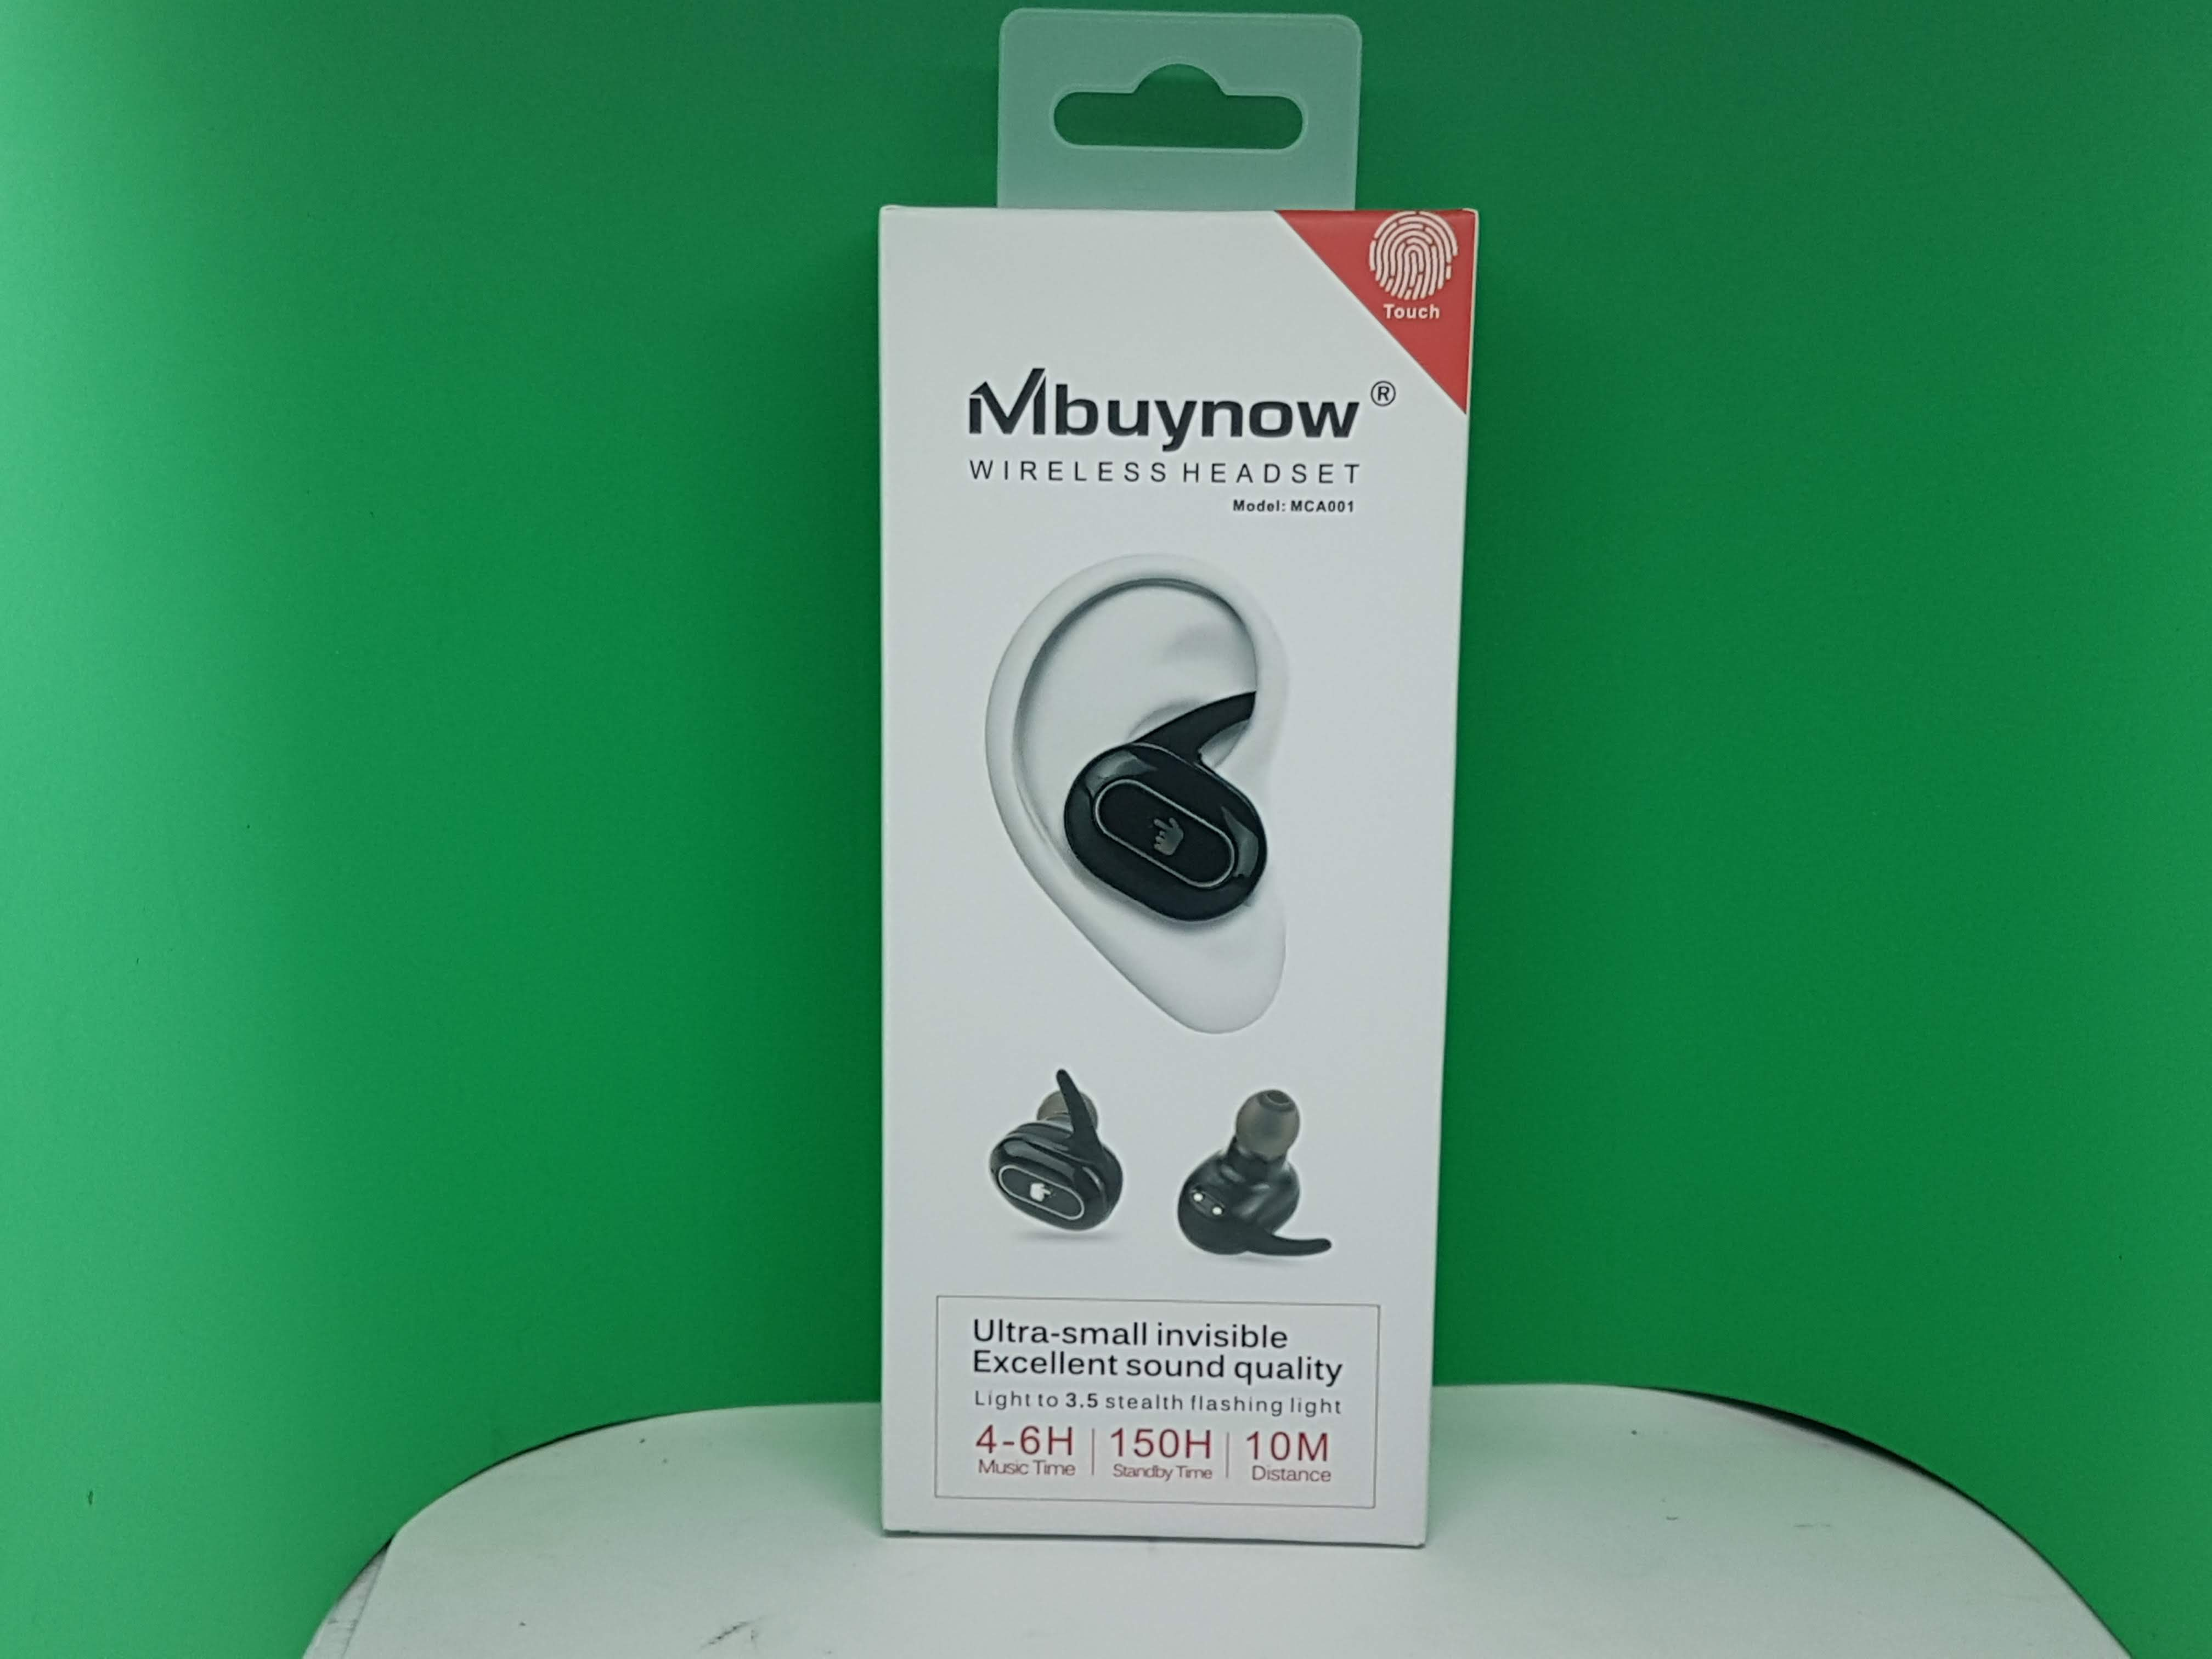 Mbuynow-Écouteurs-Bluetooth - Mbuynow-Écouteurs-Bluetooth-01.jpg